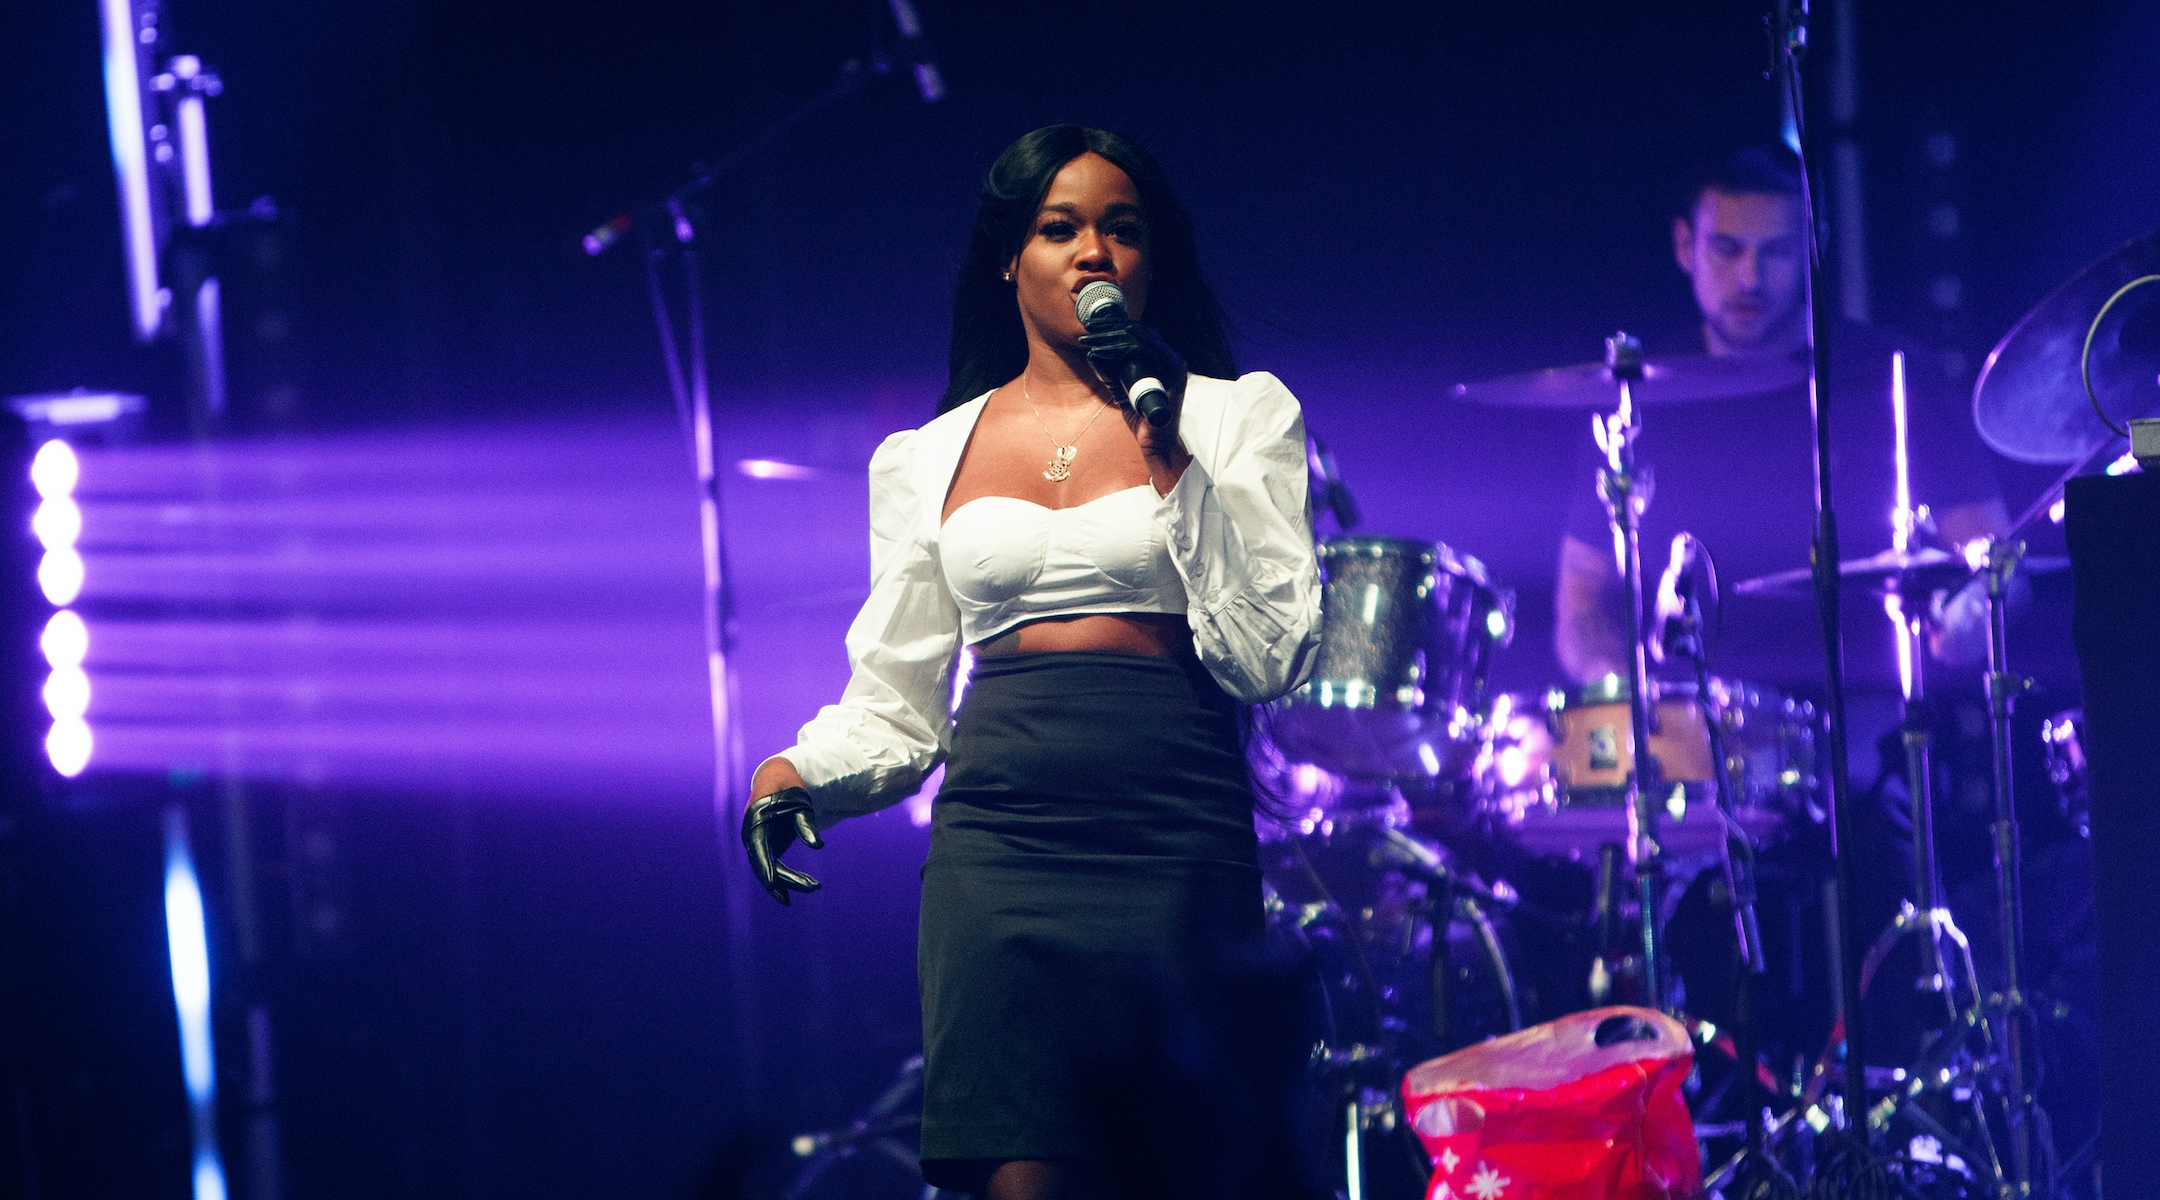 I`m Jewish now`: Rapper Azealia Banks ignites social media storm with wedding announcement